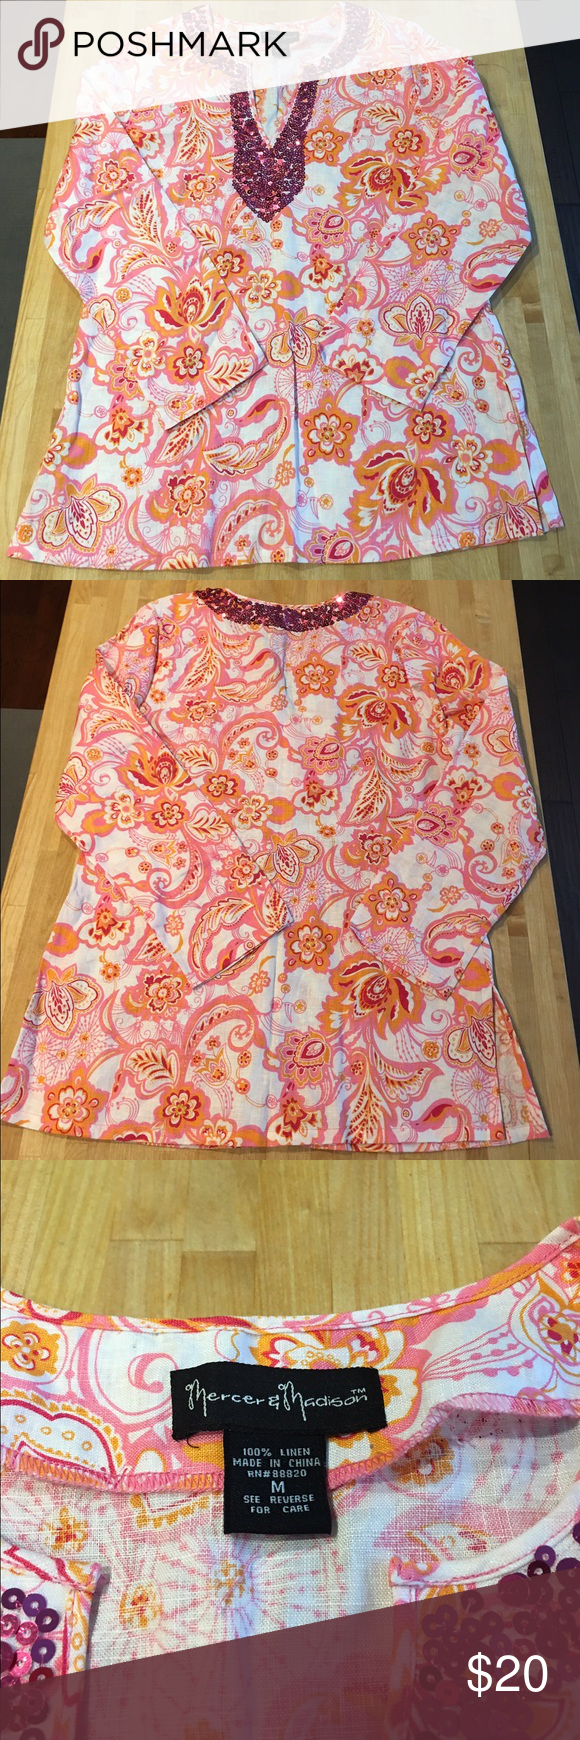 1739cc236fc Bright paisley Mercer & Madison Tunic Top Pink and orange linen top with  sequins around the neckline. Like new! Mercer & Madison Tops